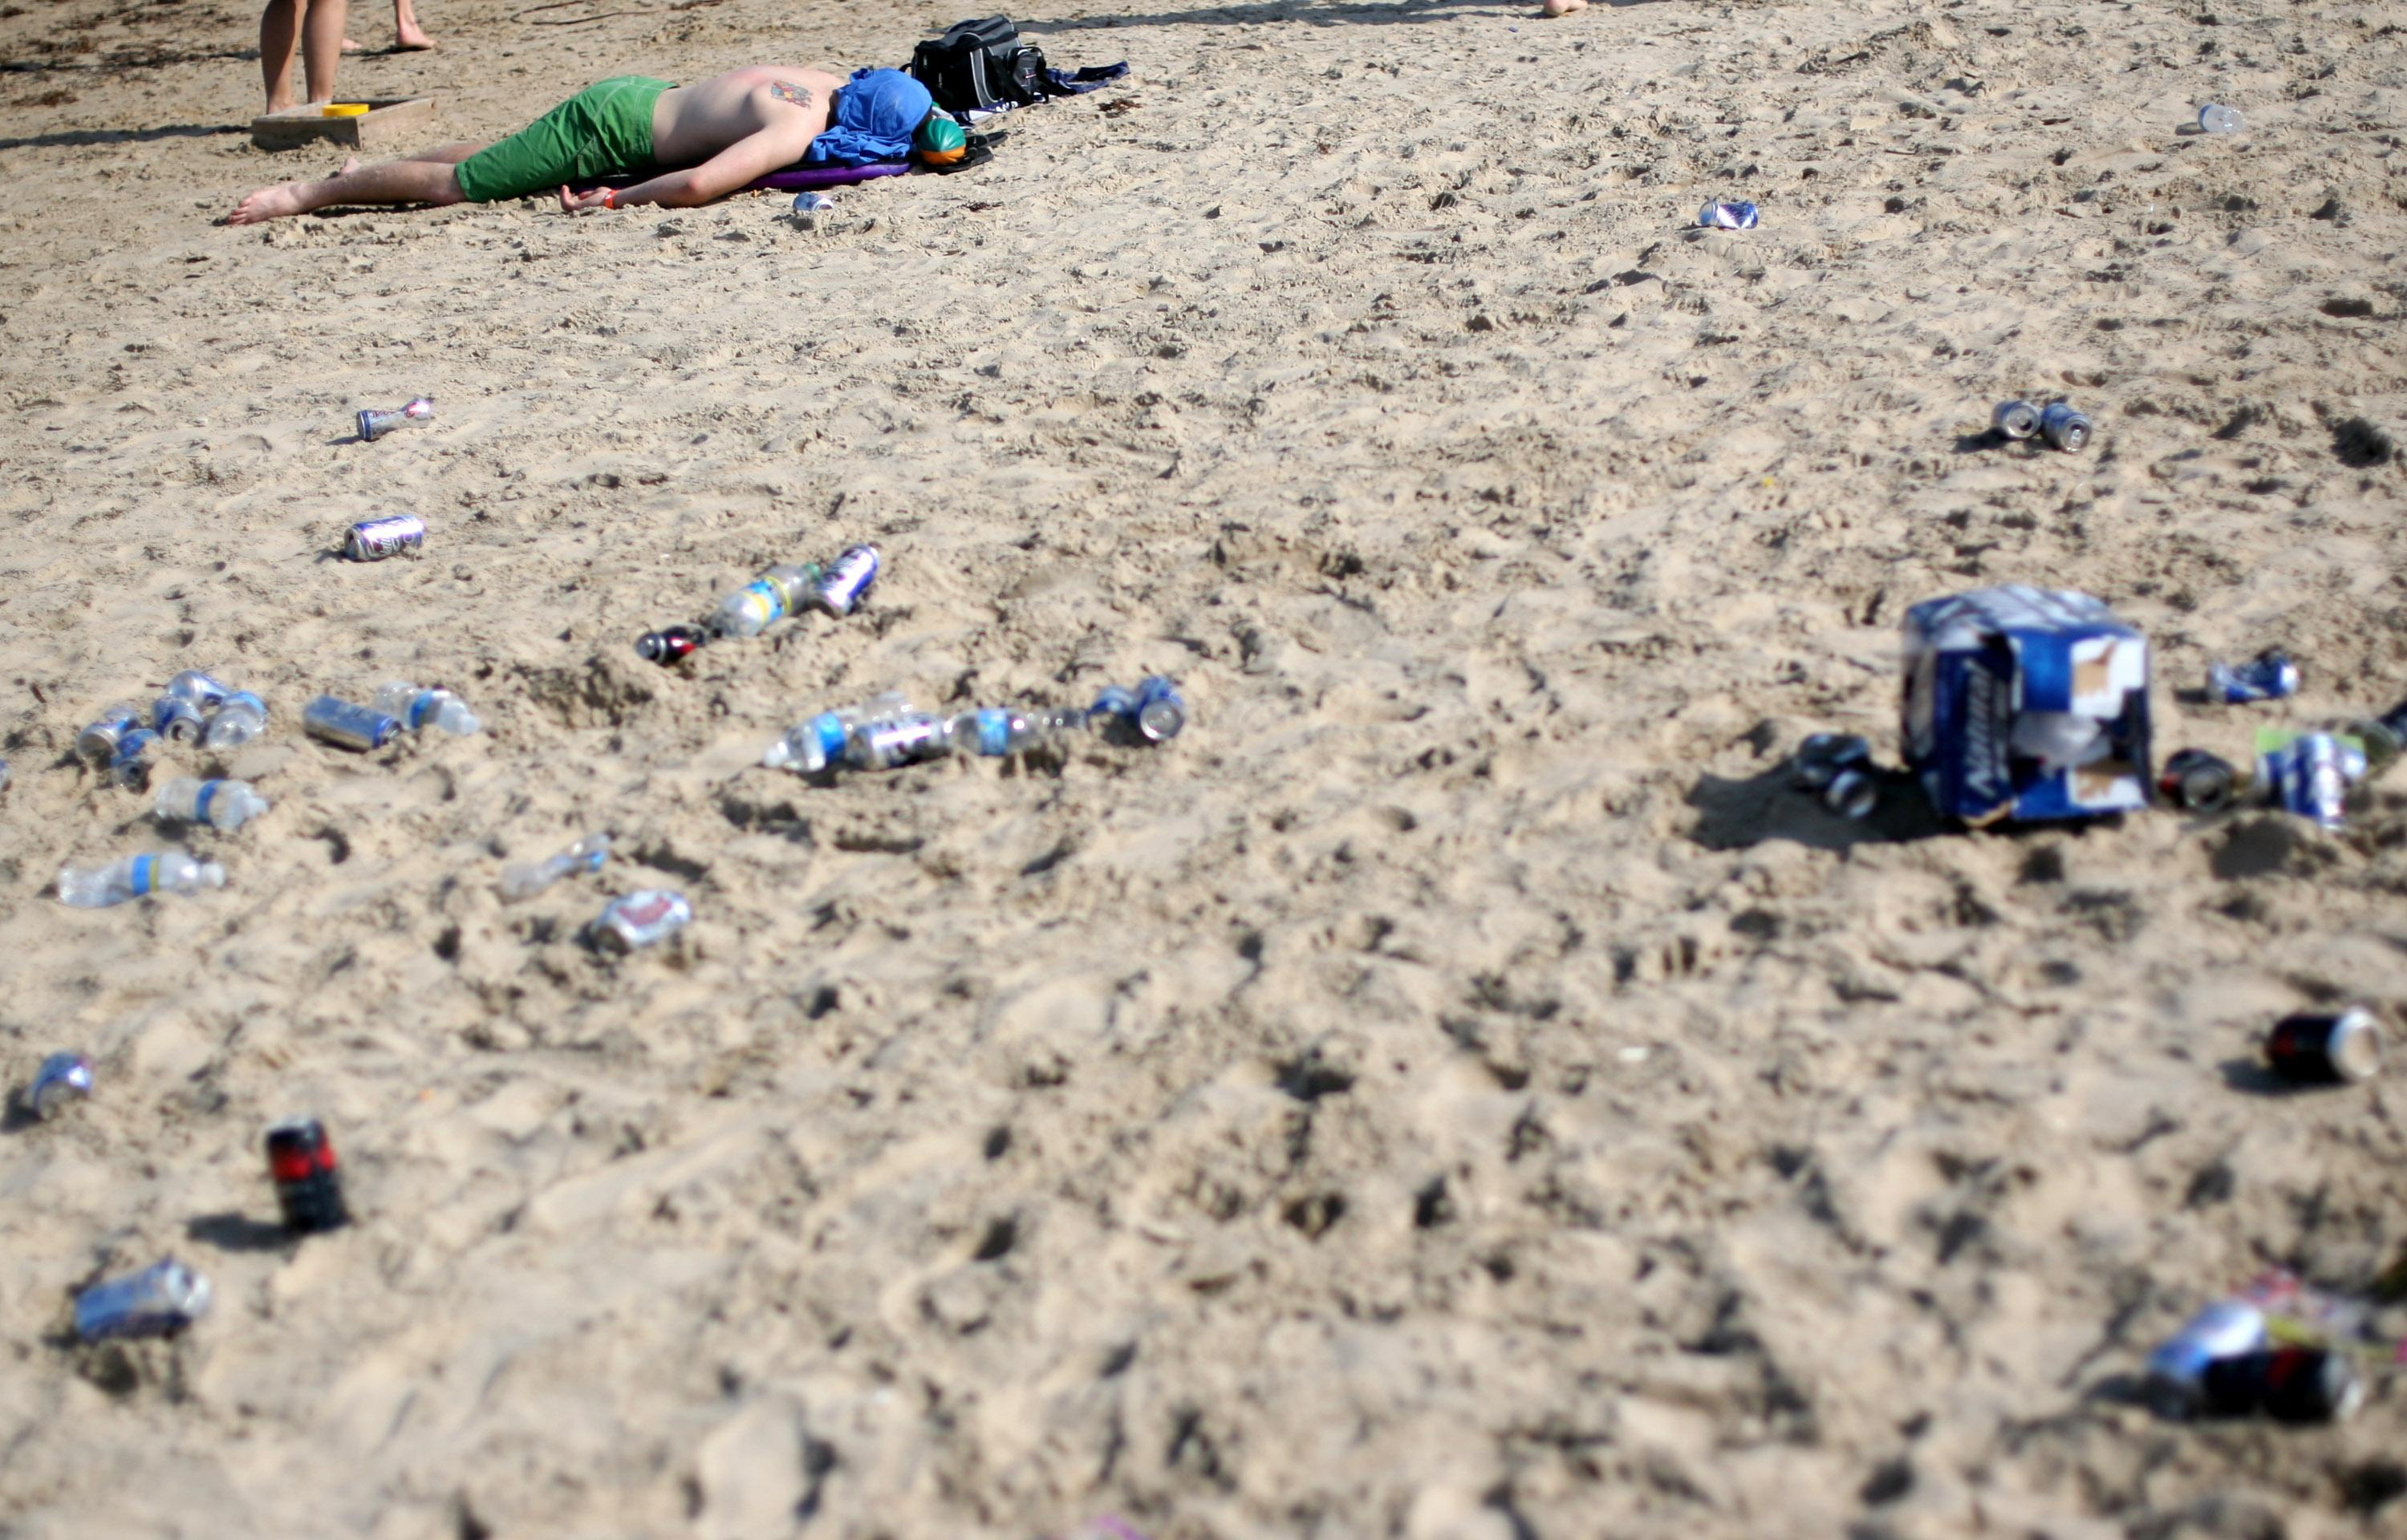 High Levels Of Fecal Matter Reported On Texas Beaches Ahead